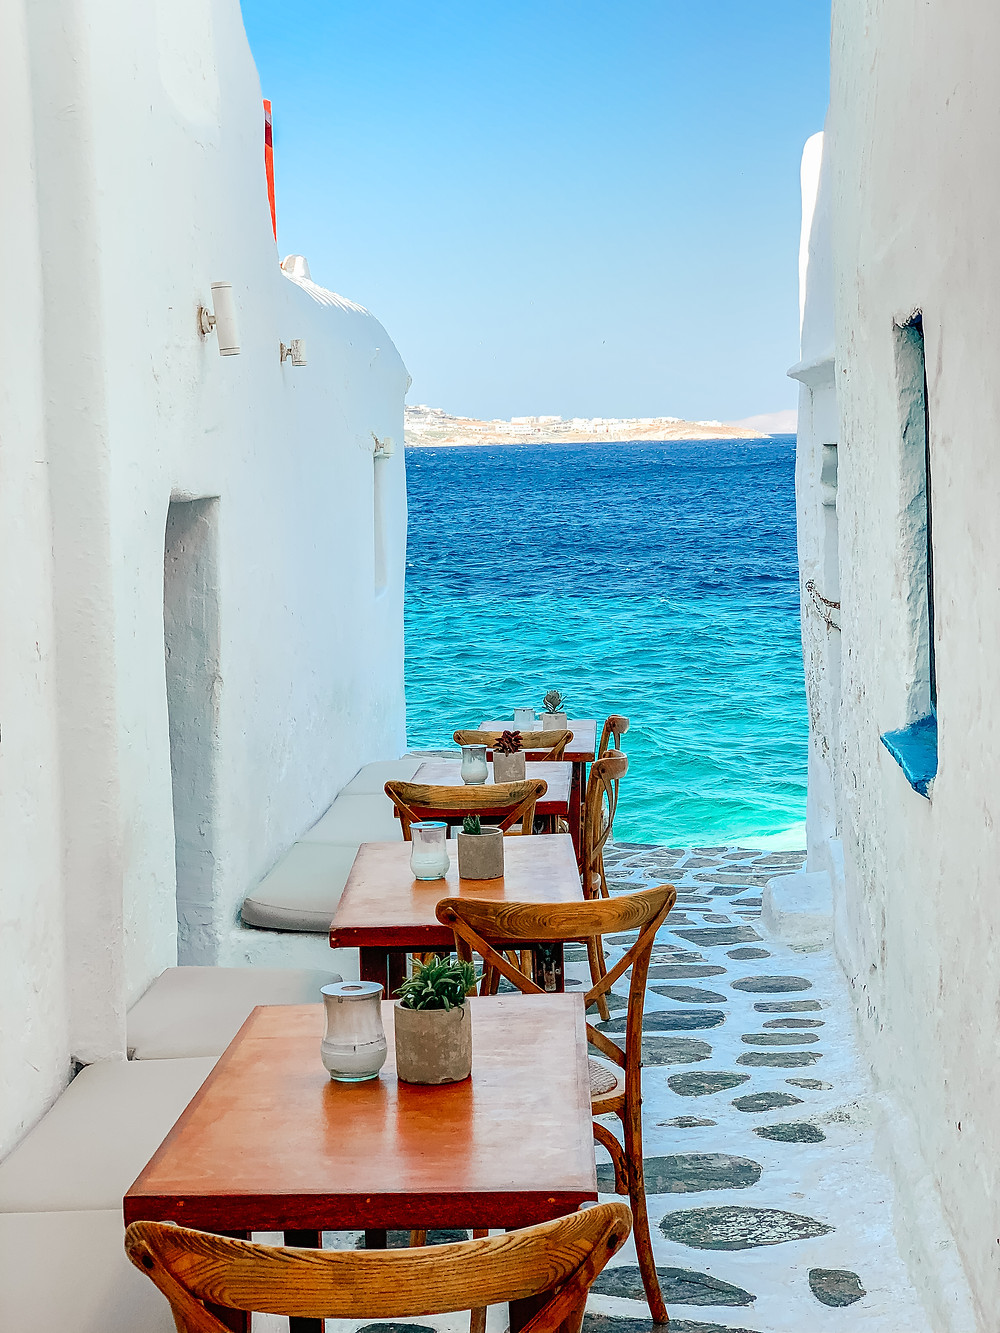 A Guide to Mykonos l Travel Guide l 2 Days in Mykonos l A Style Alike l Greece Island Hopping (44).jpg